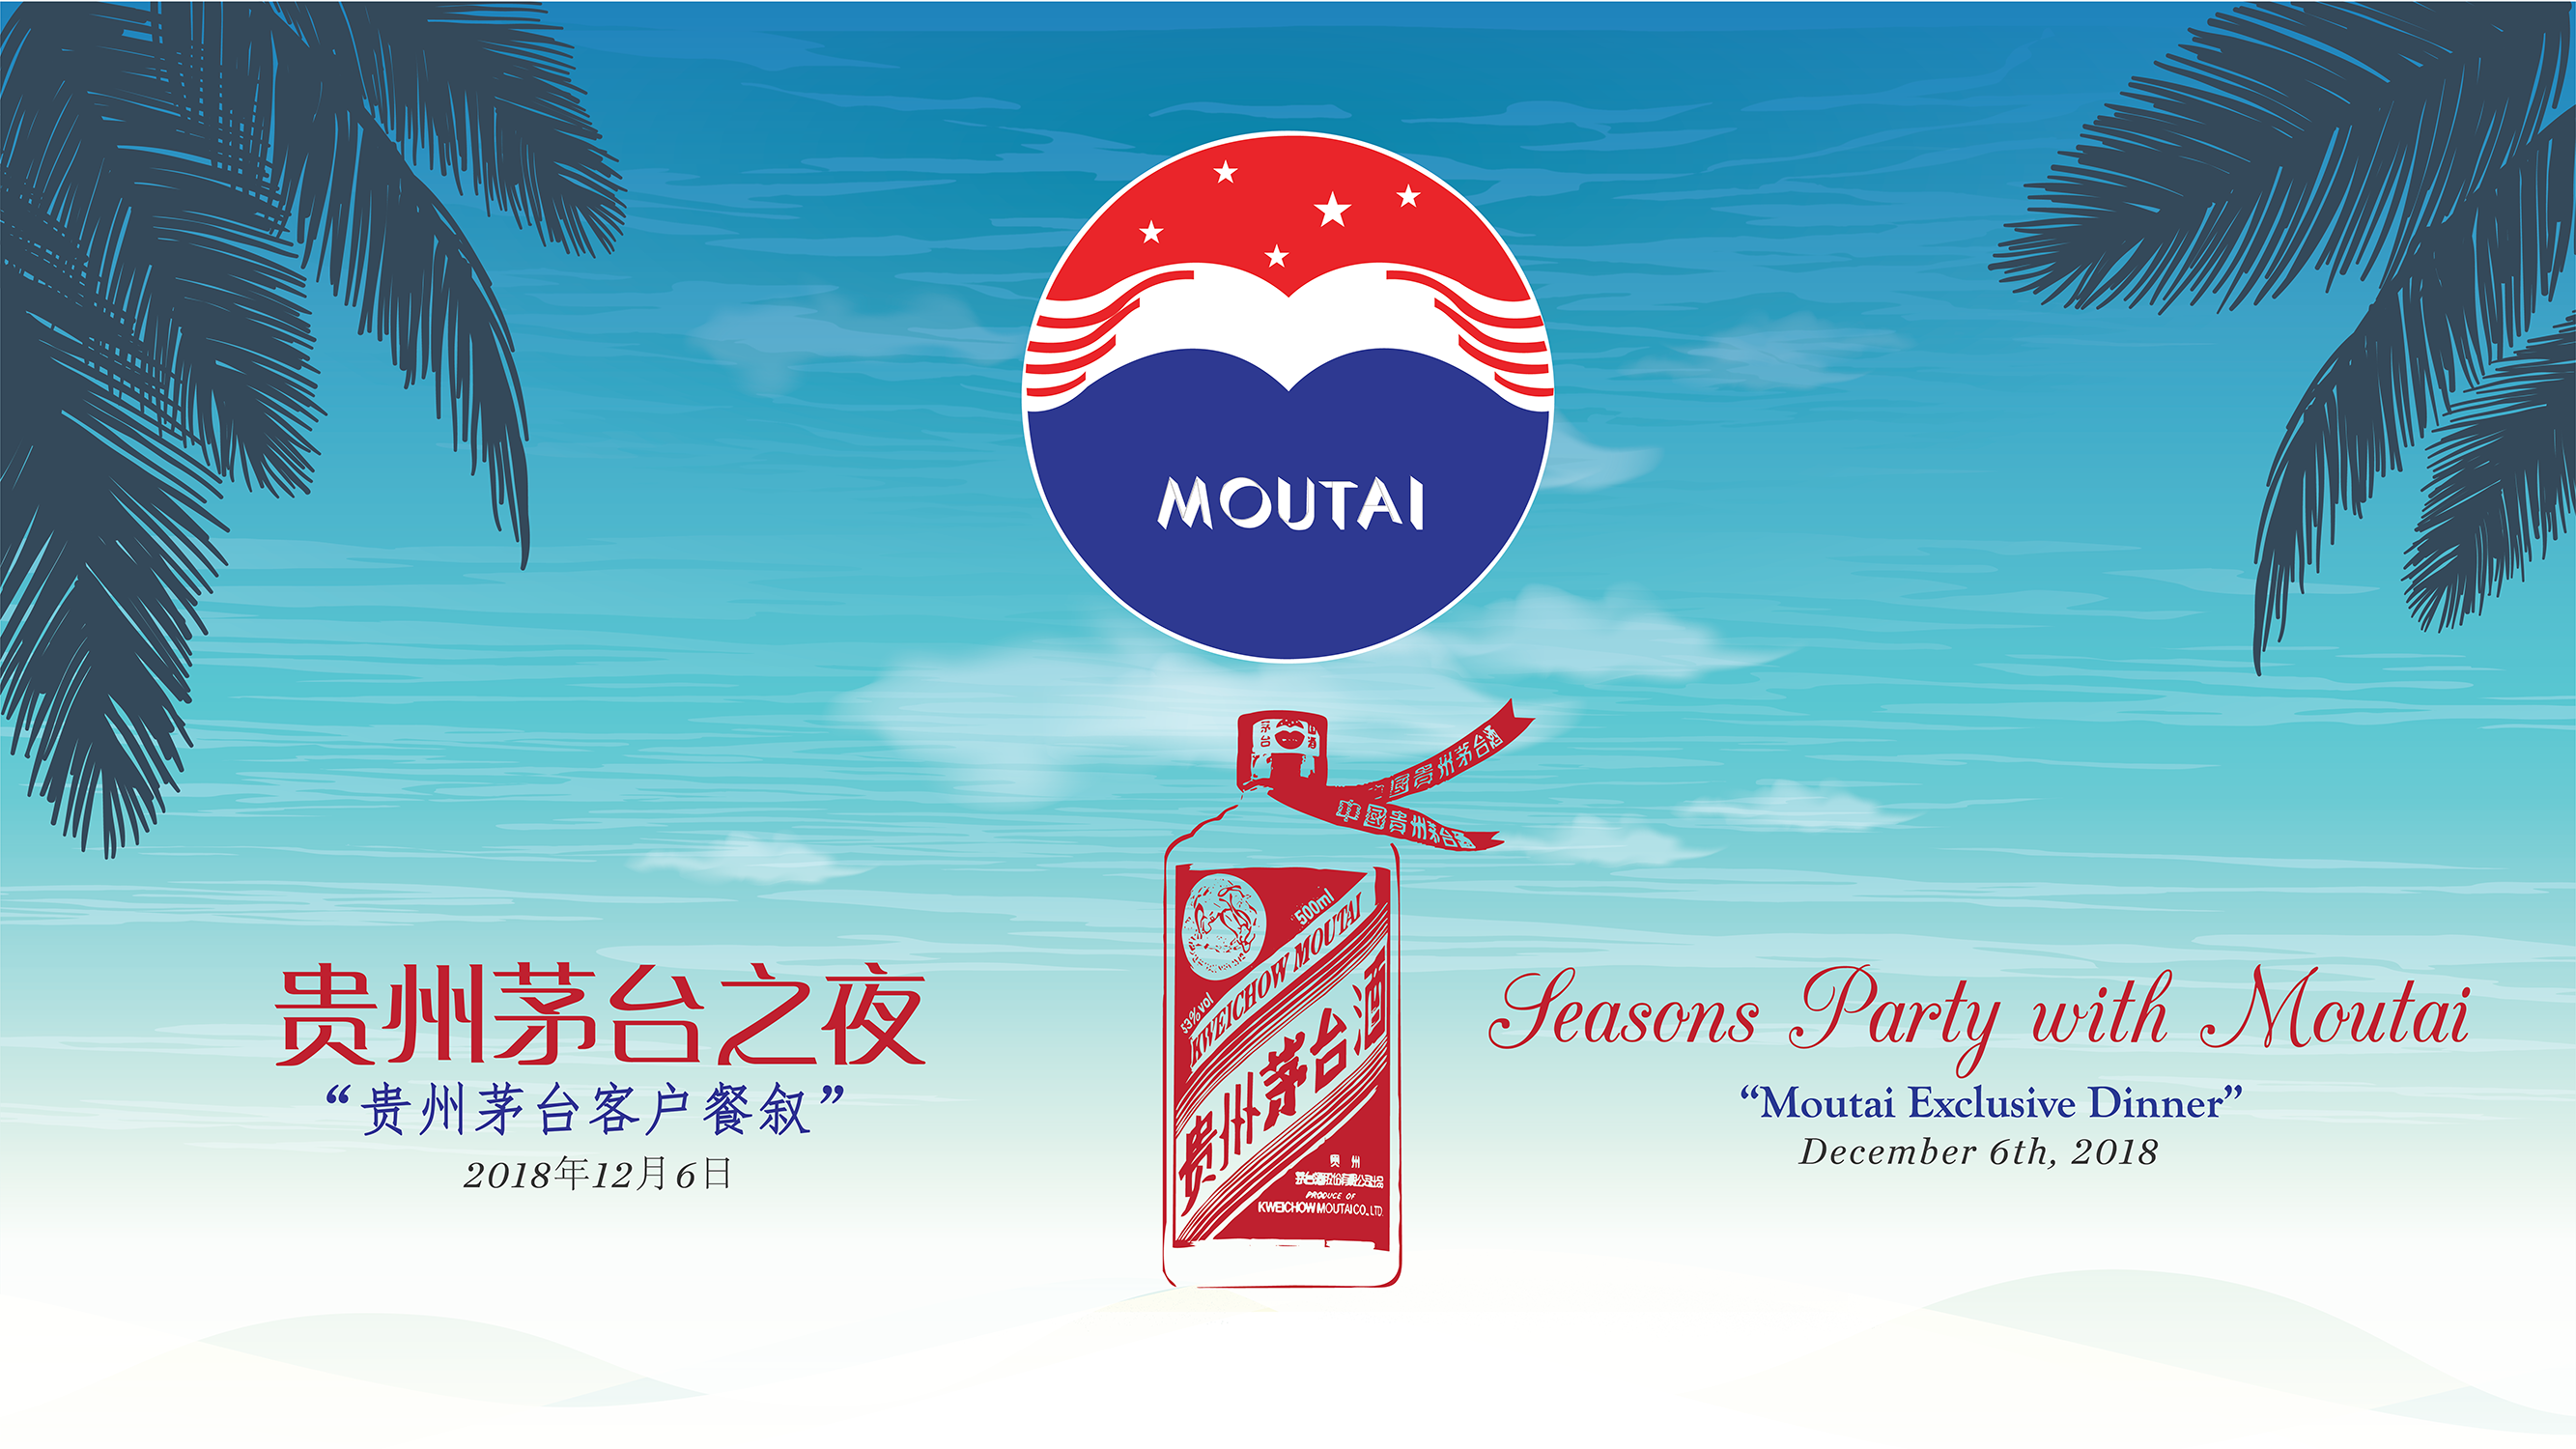 Moutai Exclusive Dinner in Phuket